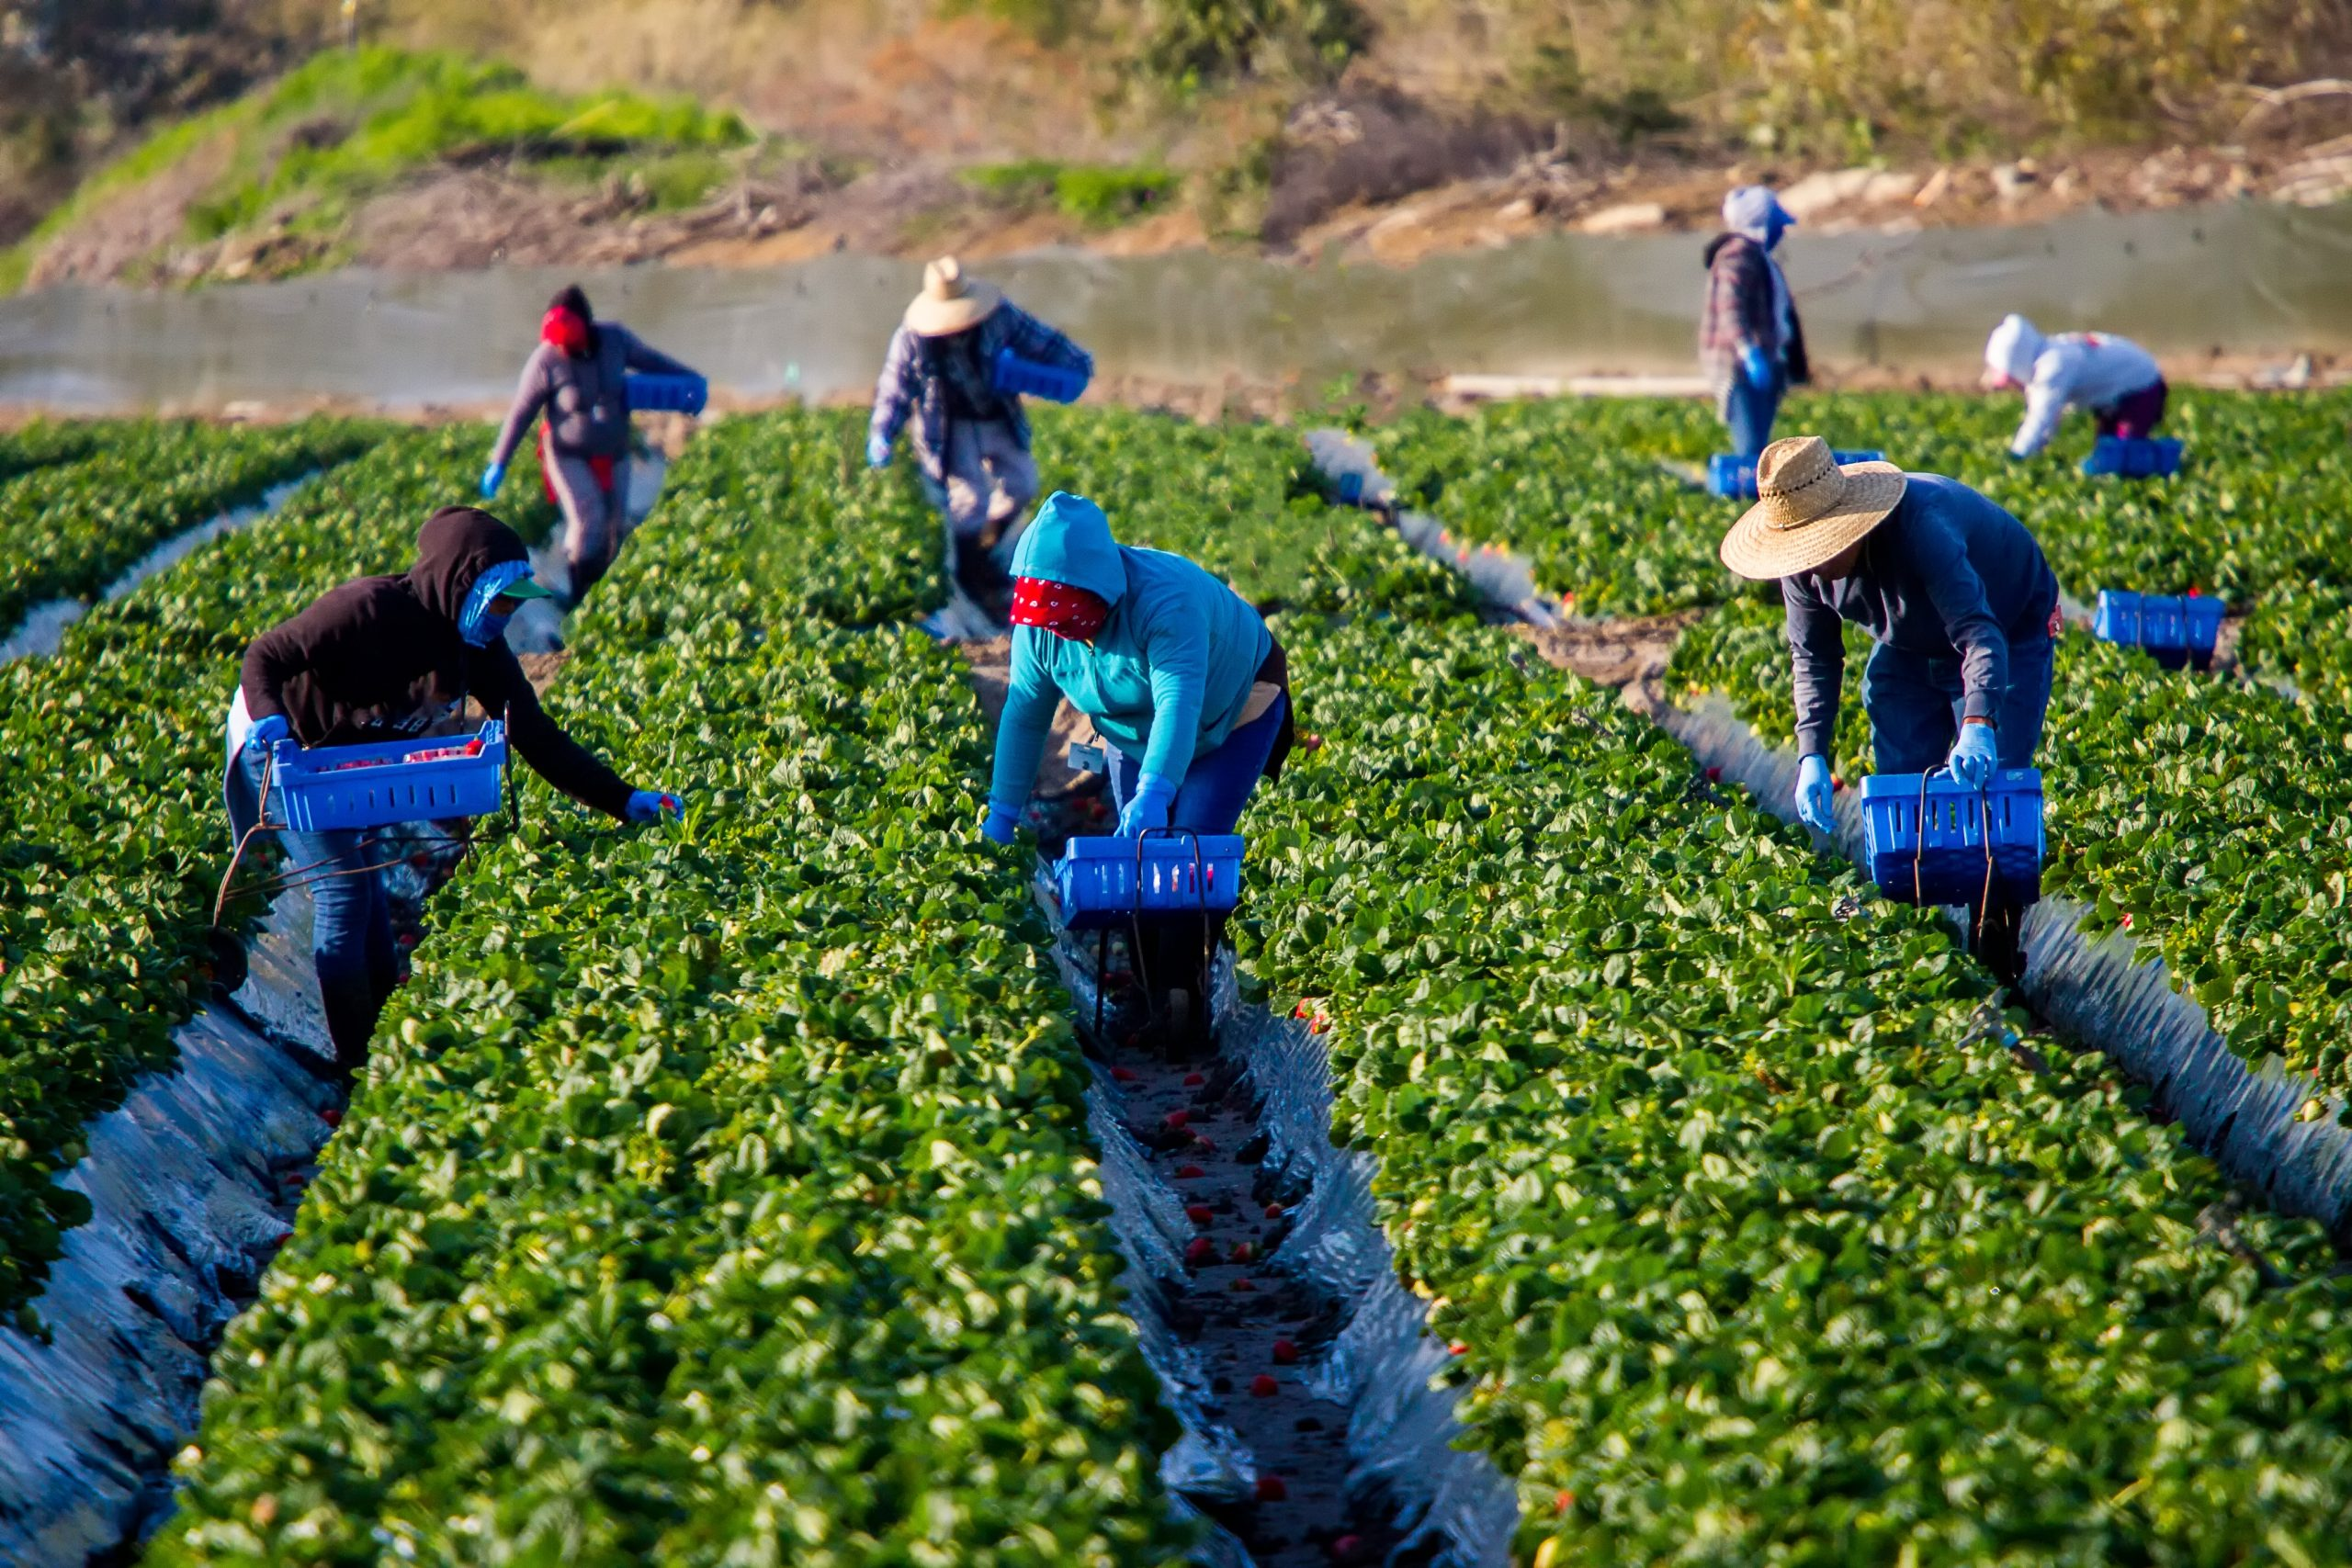 agricultural-workers-in-strawberry-field-picking-fruit-with-colorful-clothes-and-hats-blue-baskets-in_t20_E4oZx8-scaled